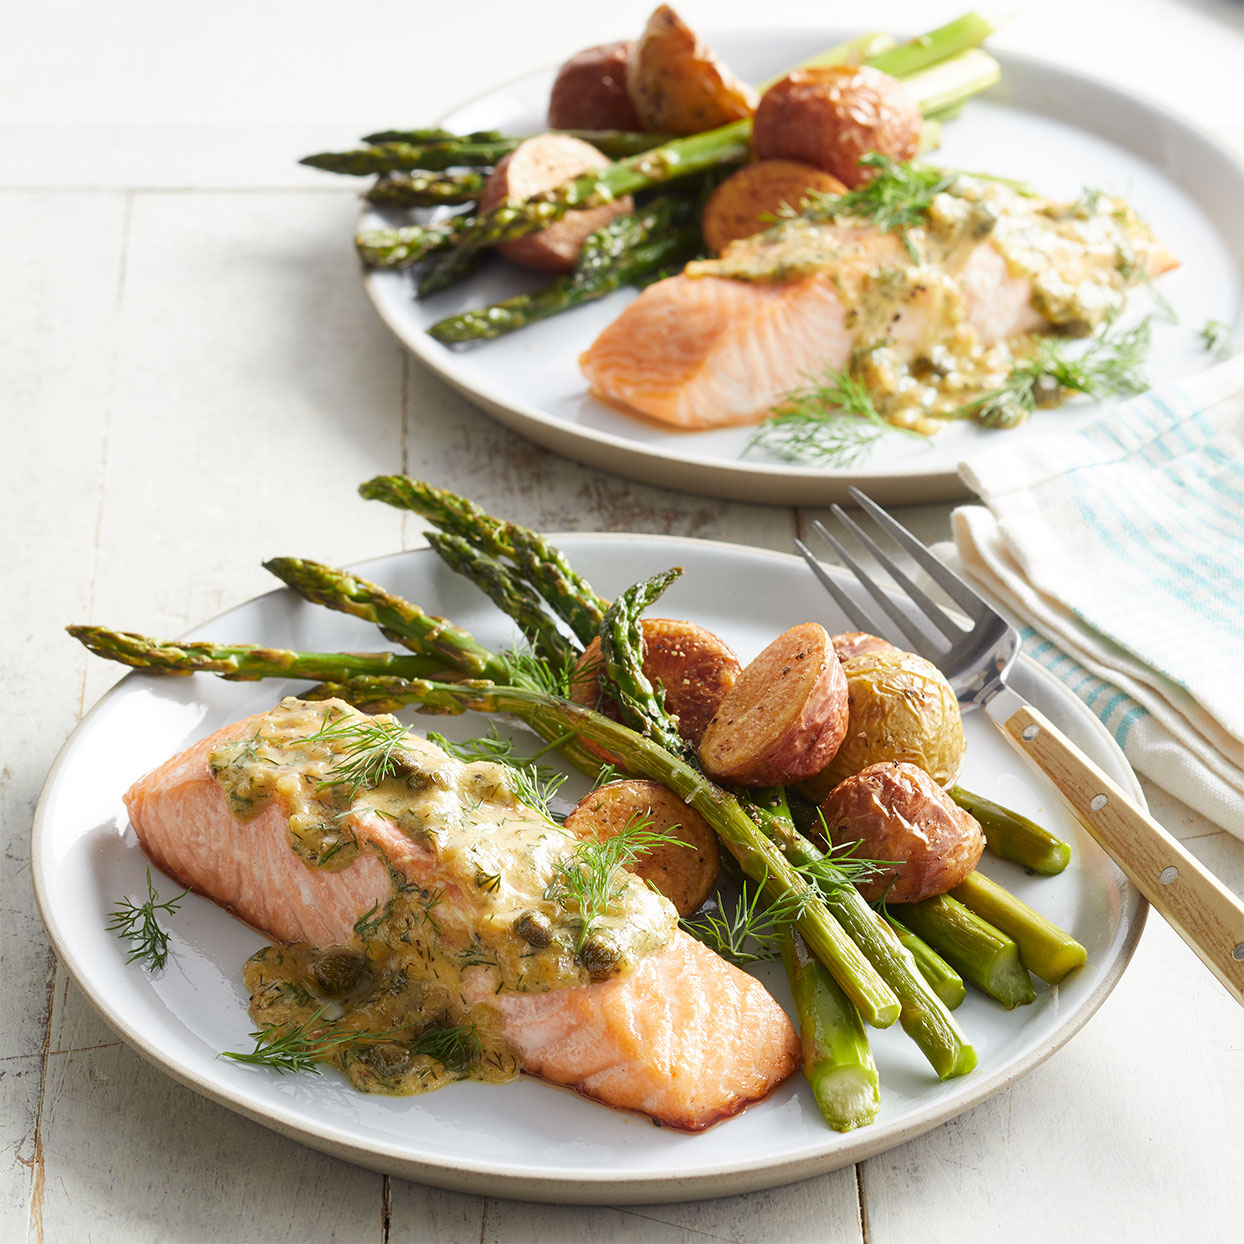 Roasted Salmon & Asparagus with Dill-Mustard Sauce